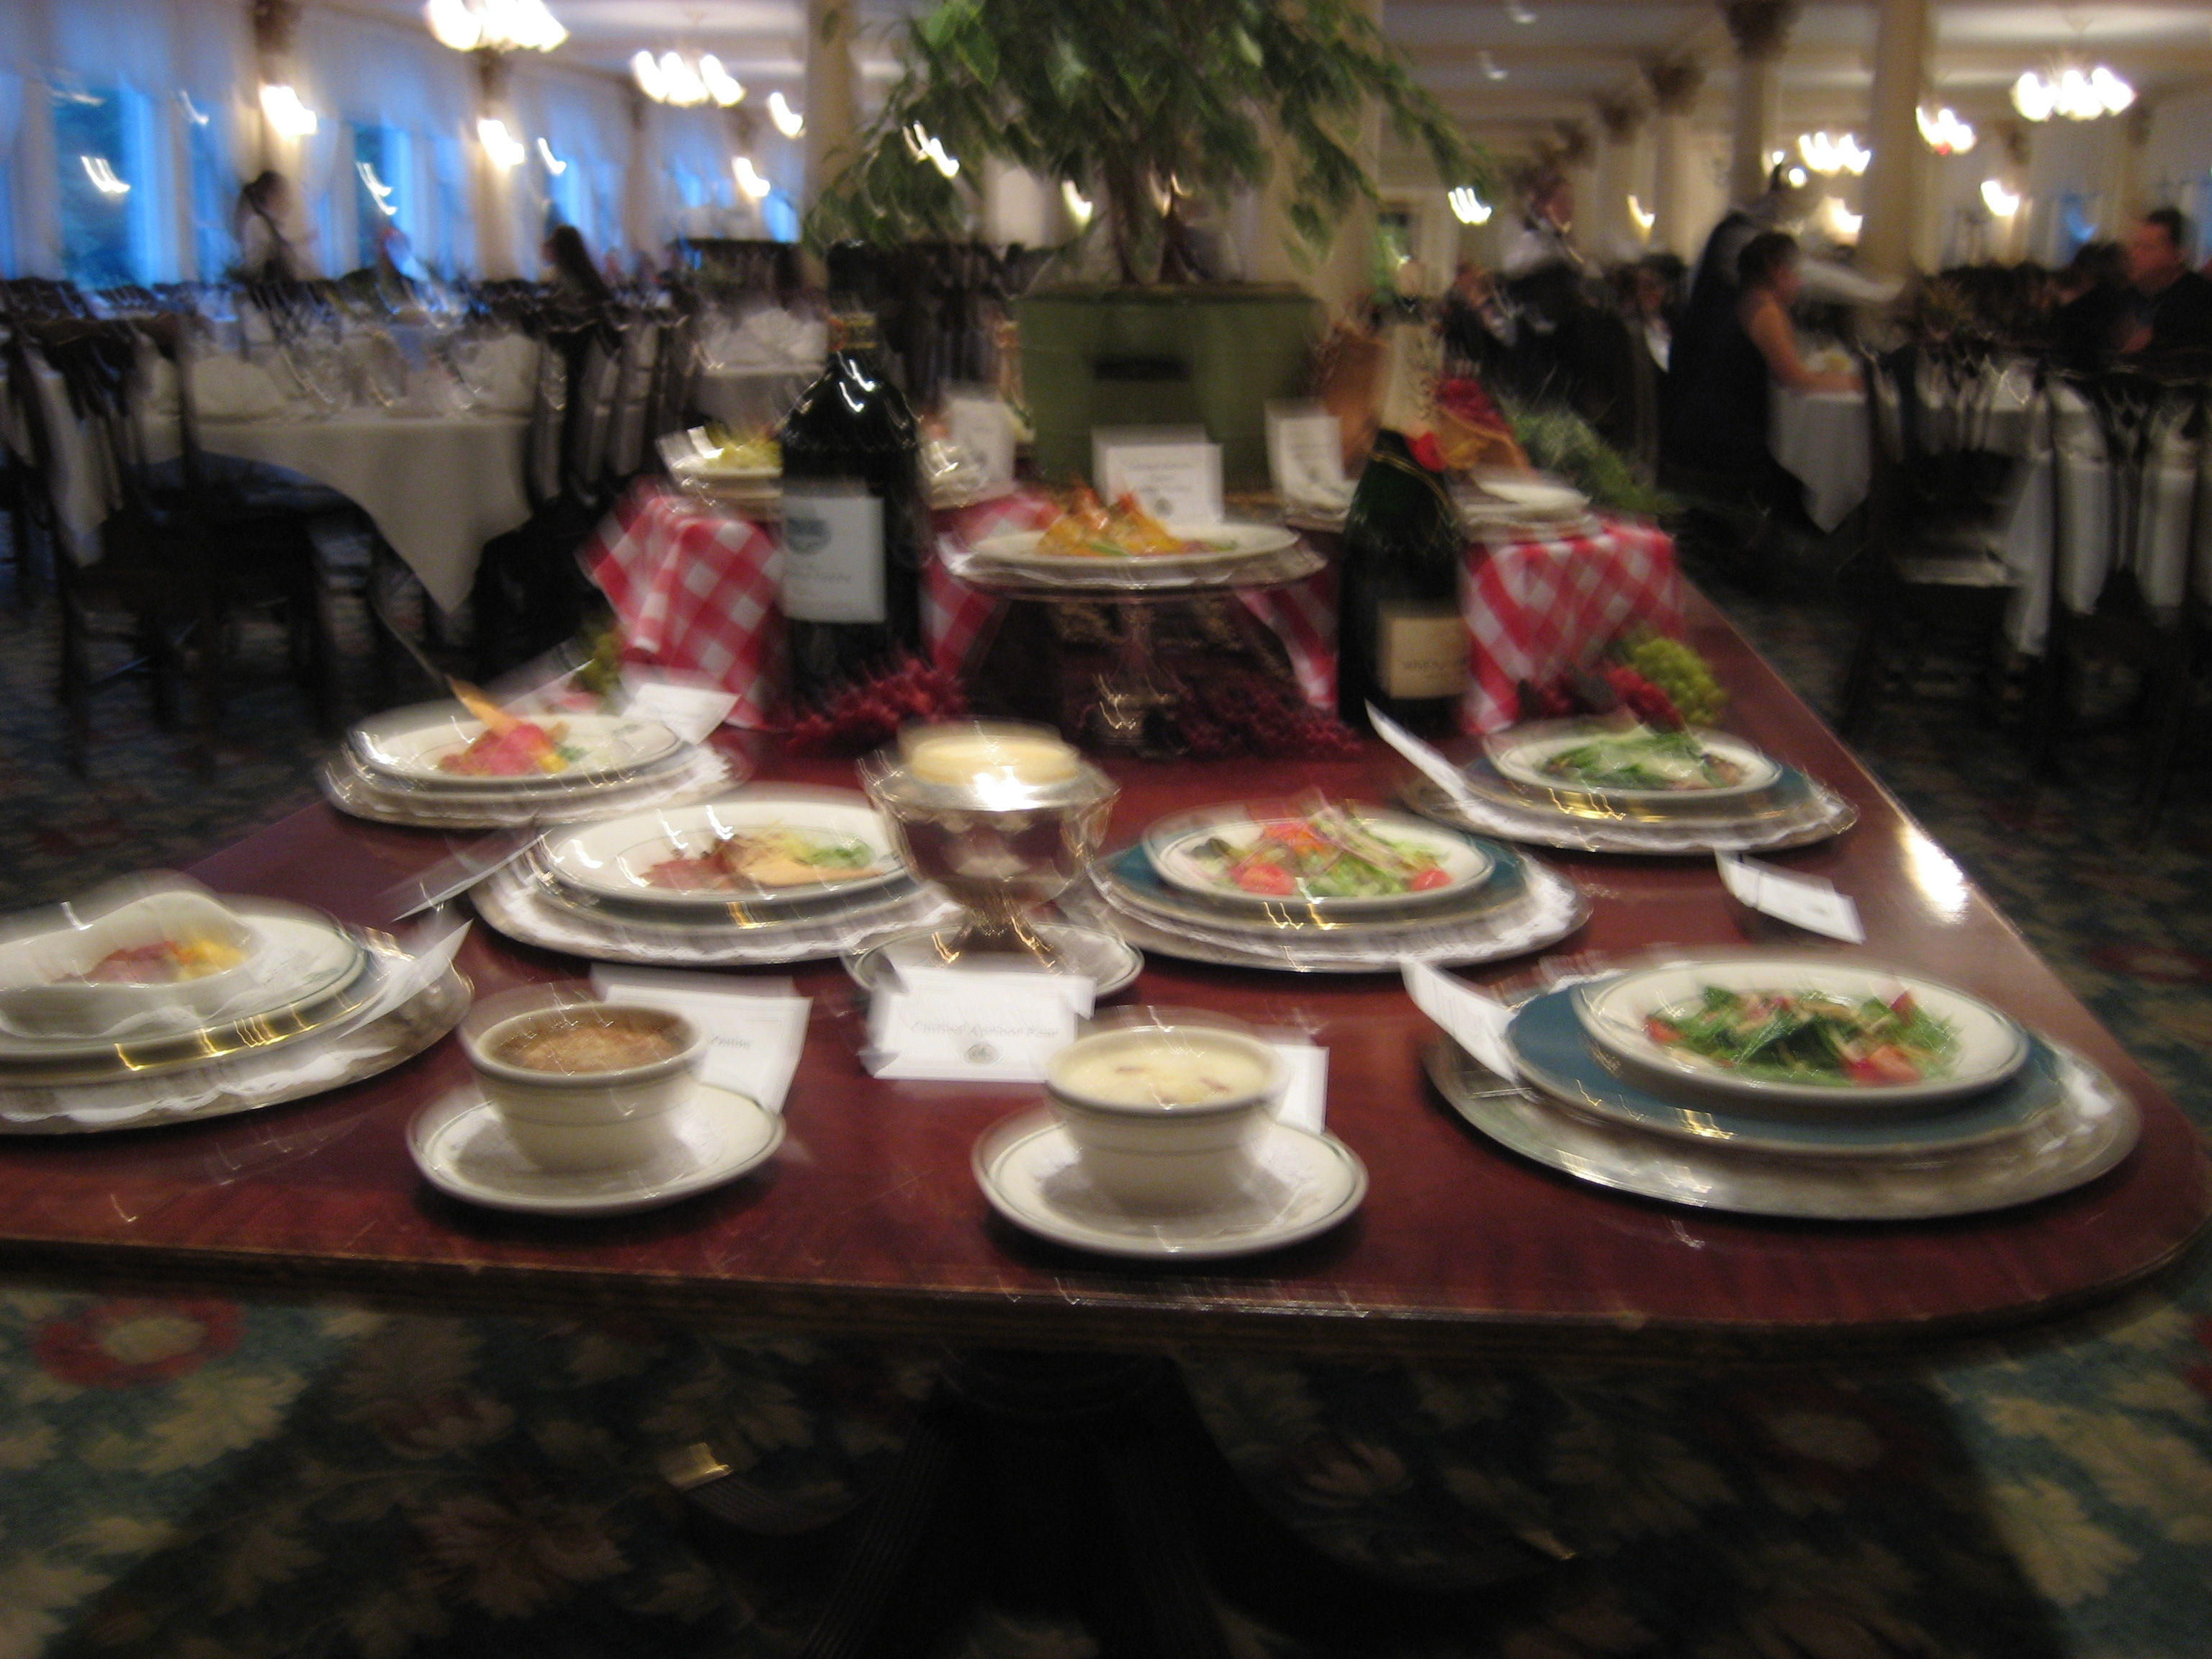 Dining at the Balsams is a food-lover's delight!